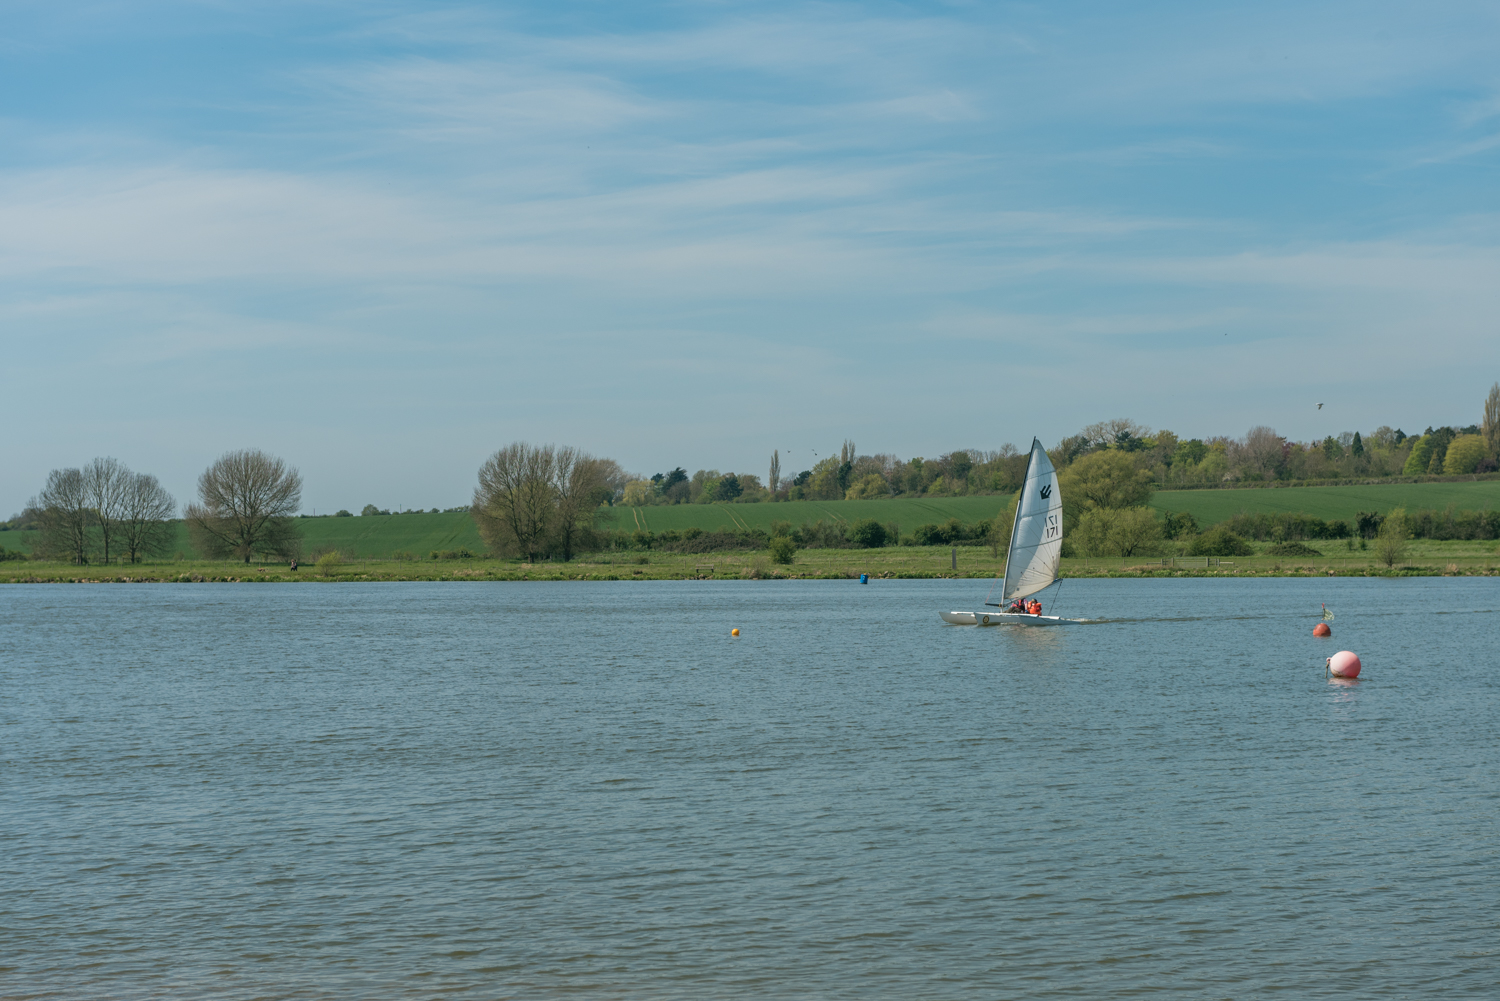 Ferry Meadows Tour – Getting to Know the Park